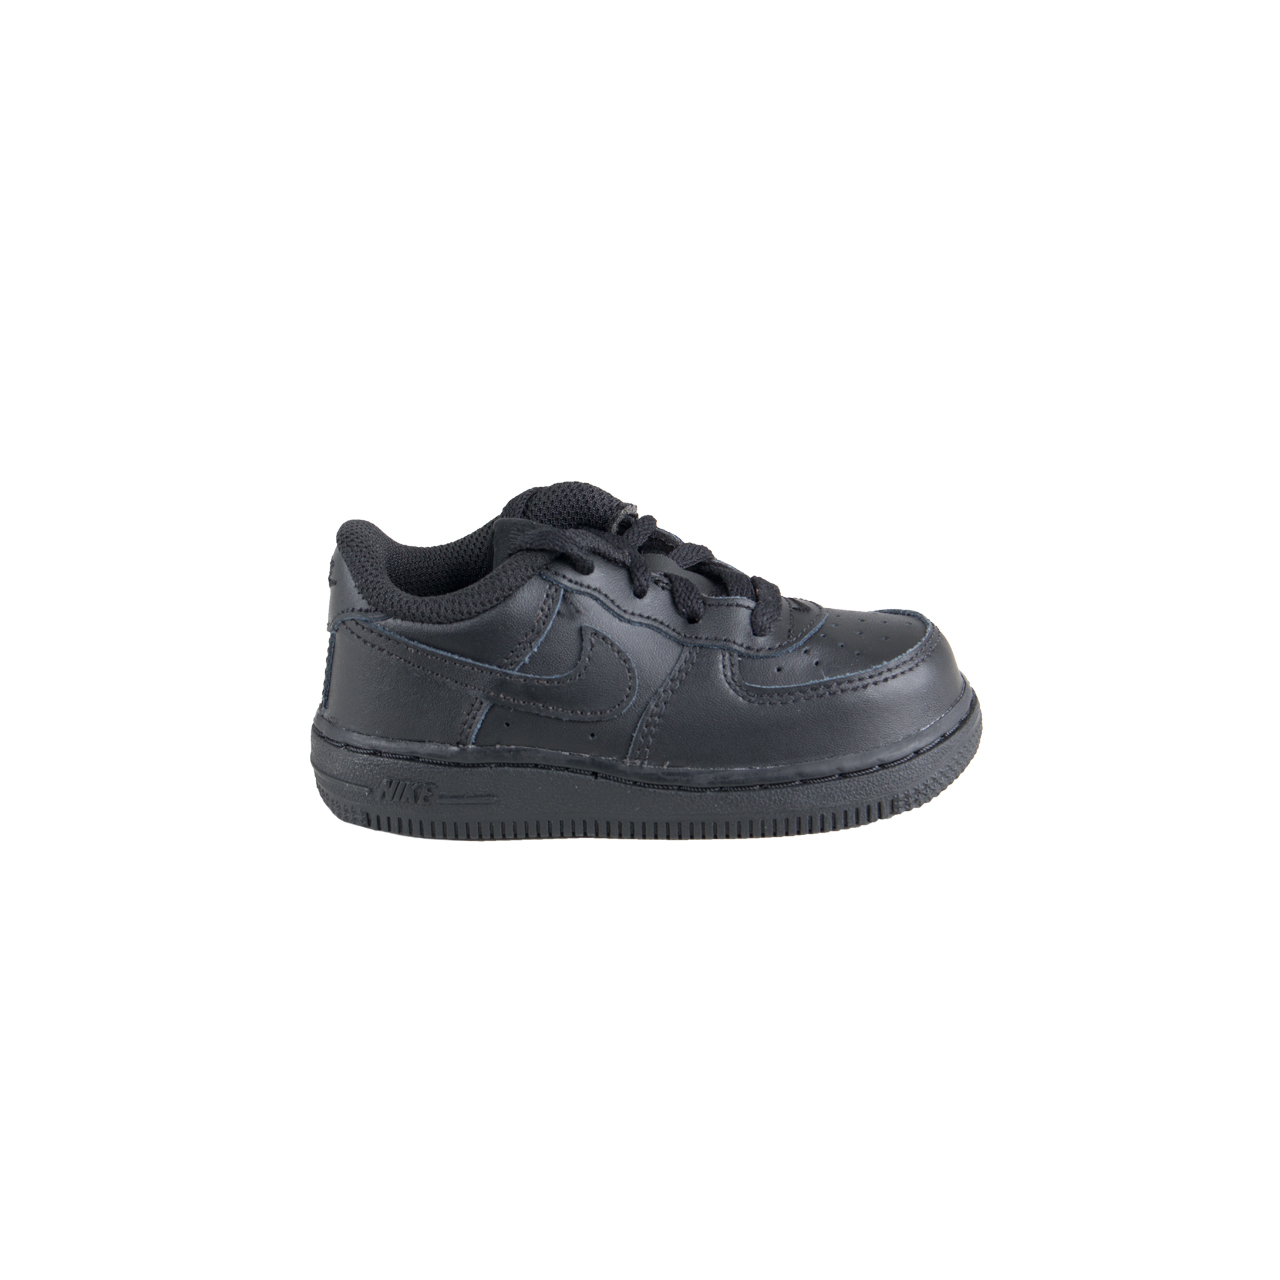 half off e8176 177d0 NIKE Air Force 1 TD Sneakers Baby – Collab Sneakers